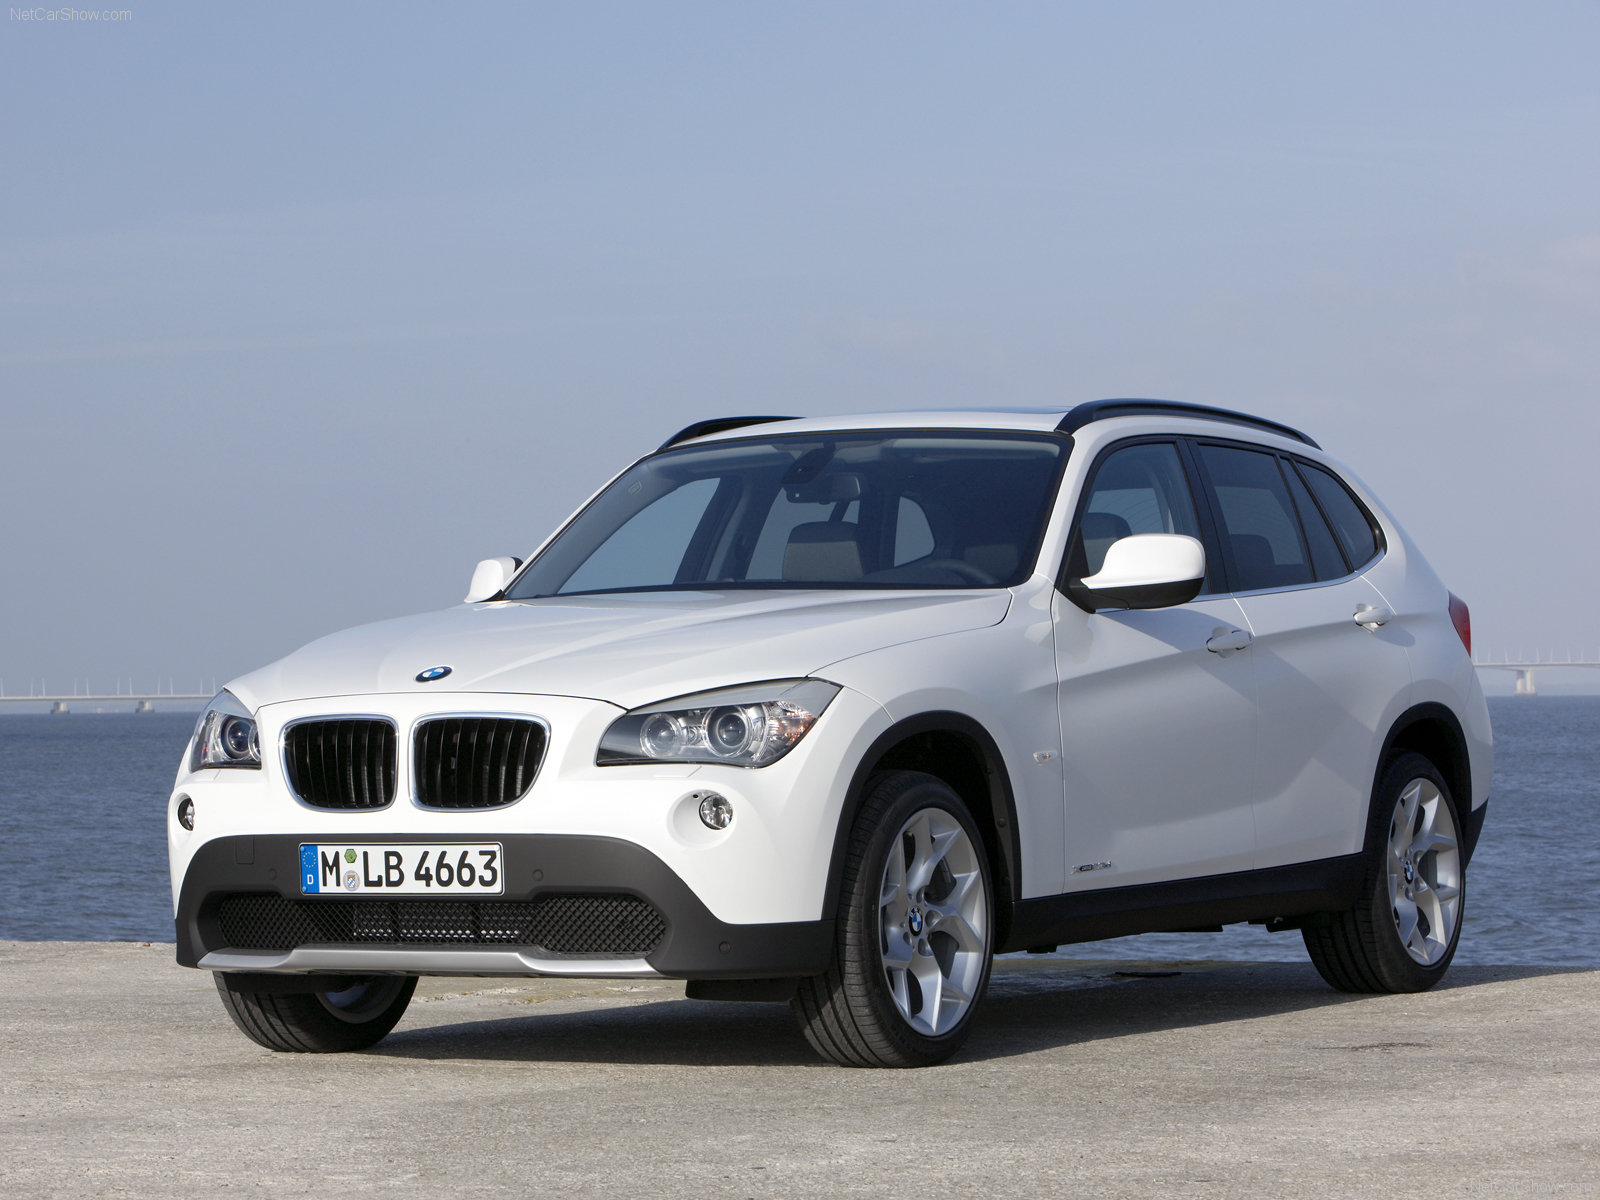 bmw x1 suv launched in india review photos specs. Black Bedroom Furniture Sets. Home Design Ideas